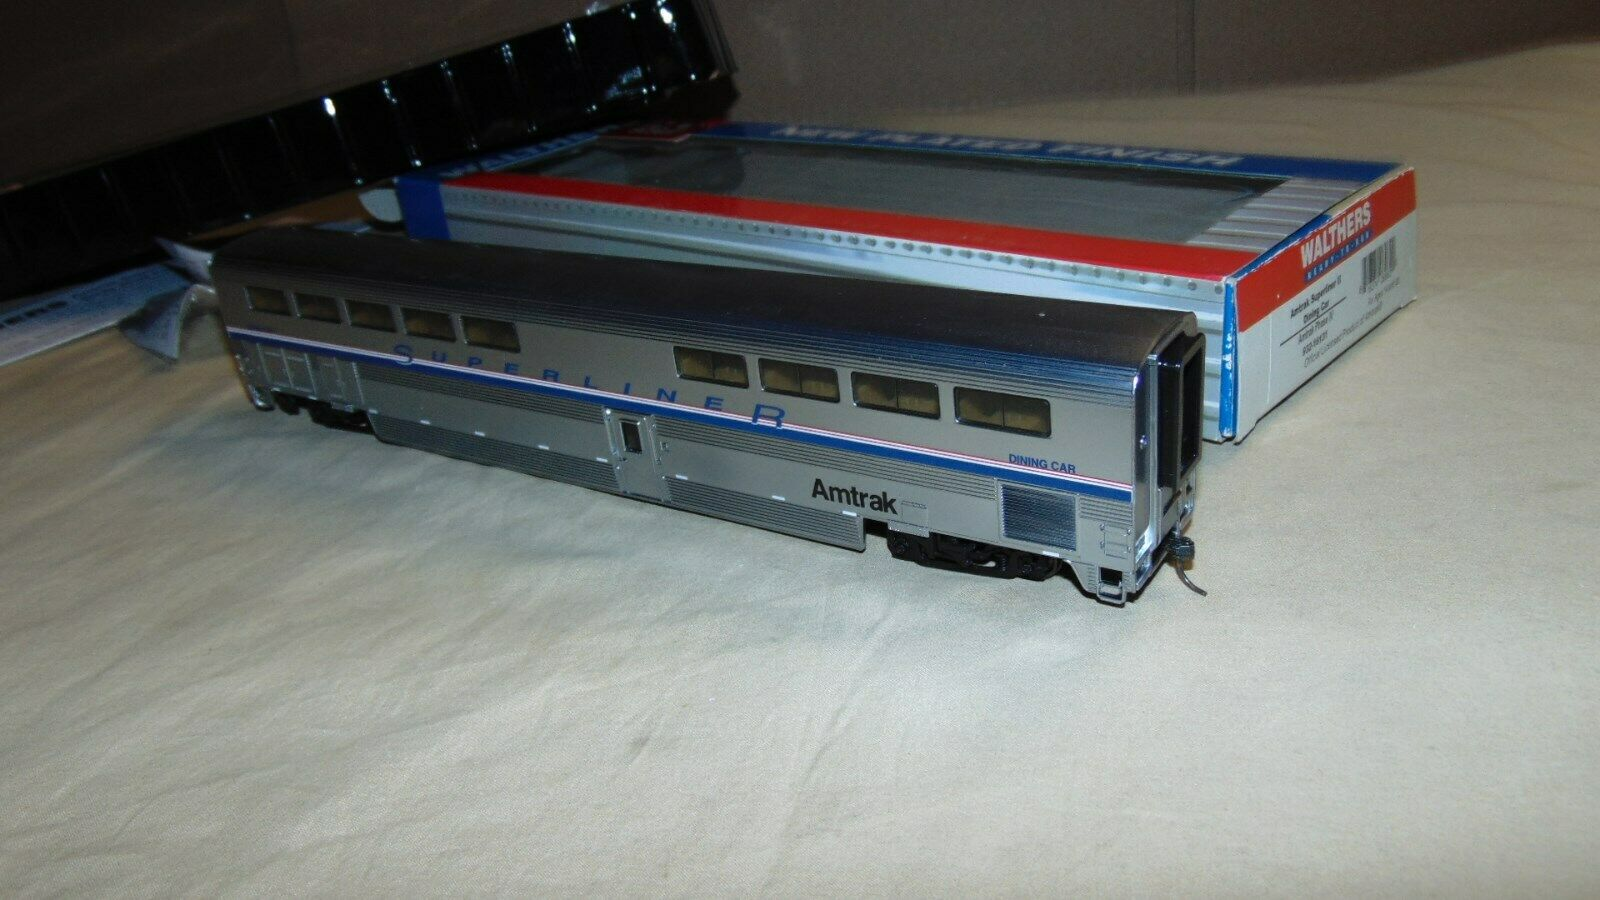 WALTHERS HO 932-16131 AMTRAK SUPERLINER PLATED DINING CAR IN ORIGINAL BOX...